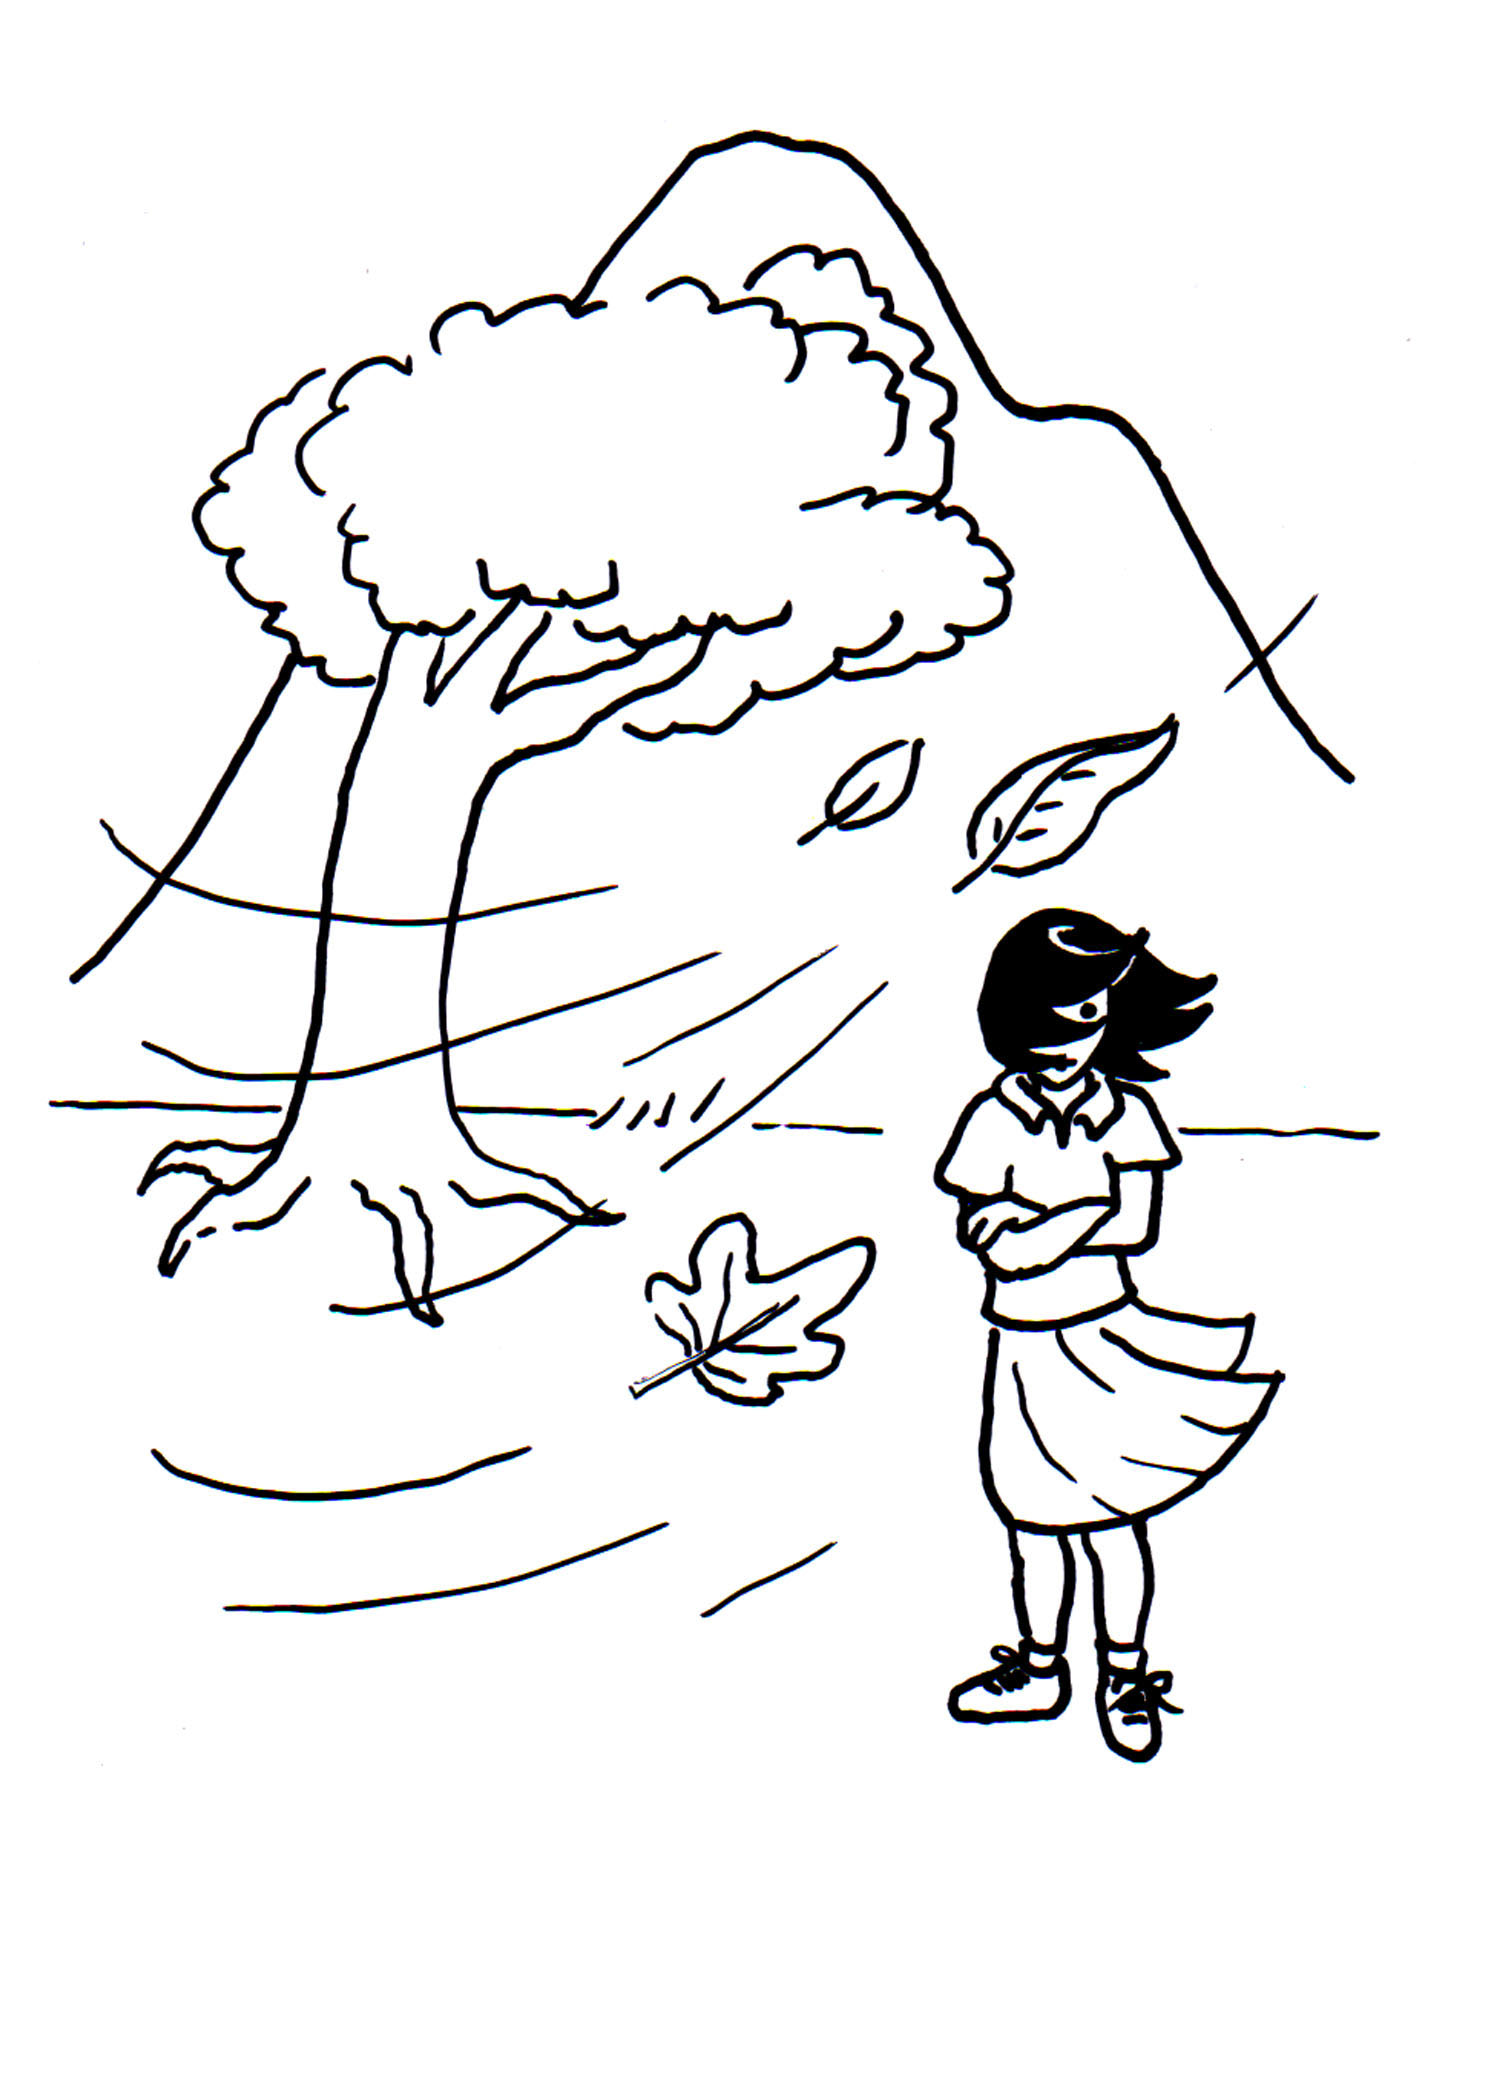 Hurricane Coloring Pages